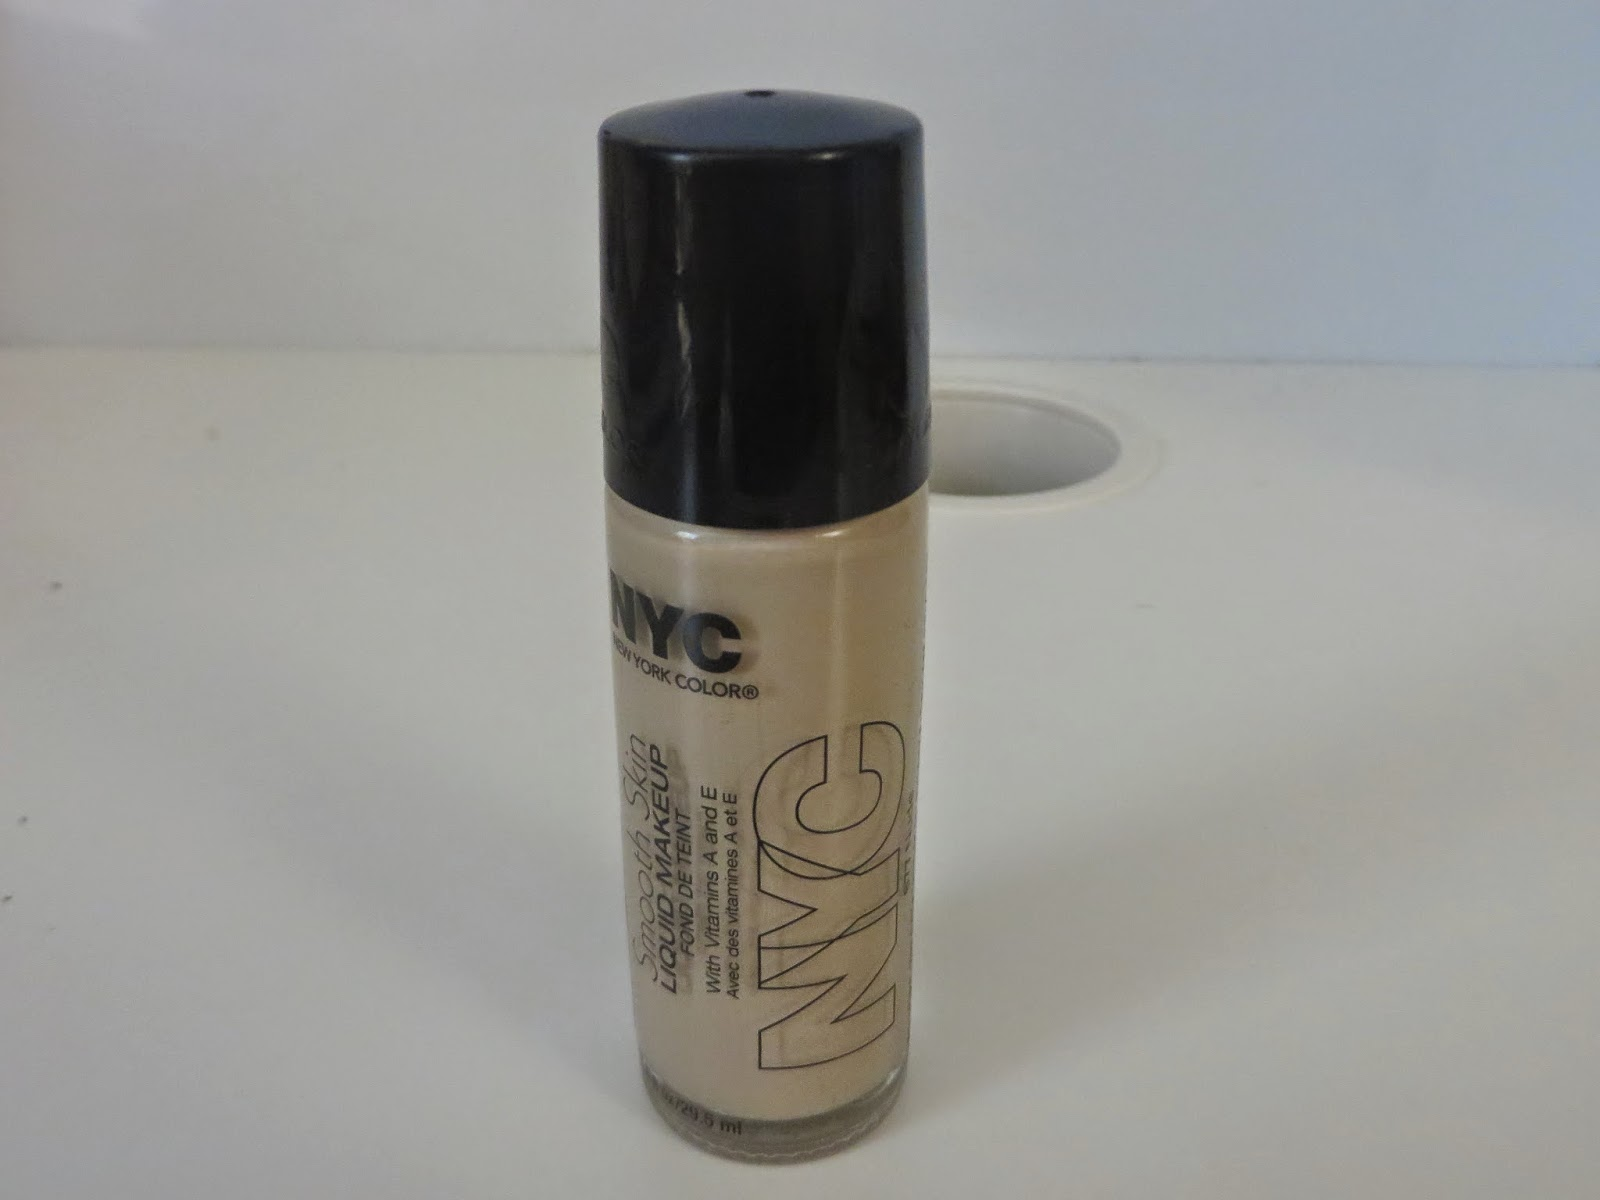 NYC Smooth Skin Liquid Makeup Foundation in 677 Nude